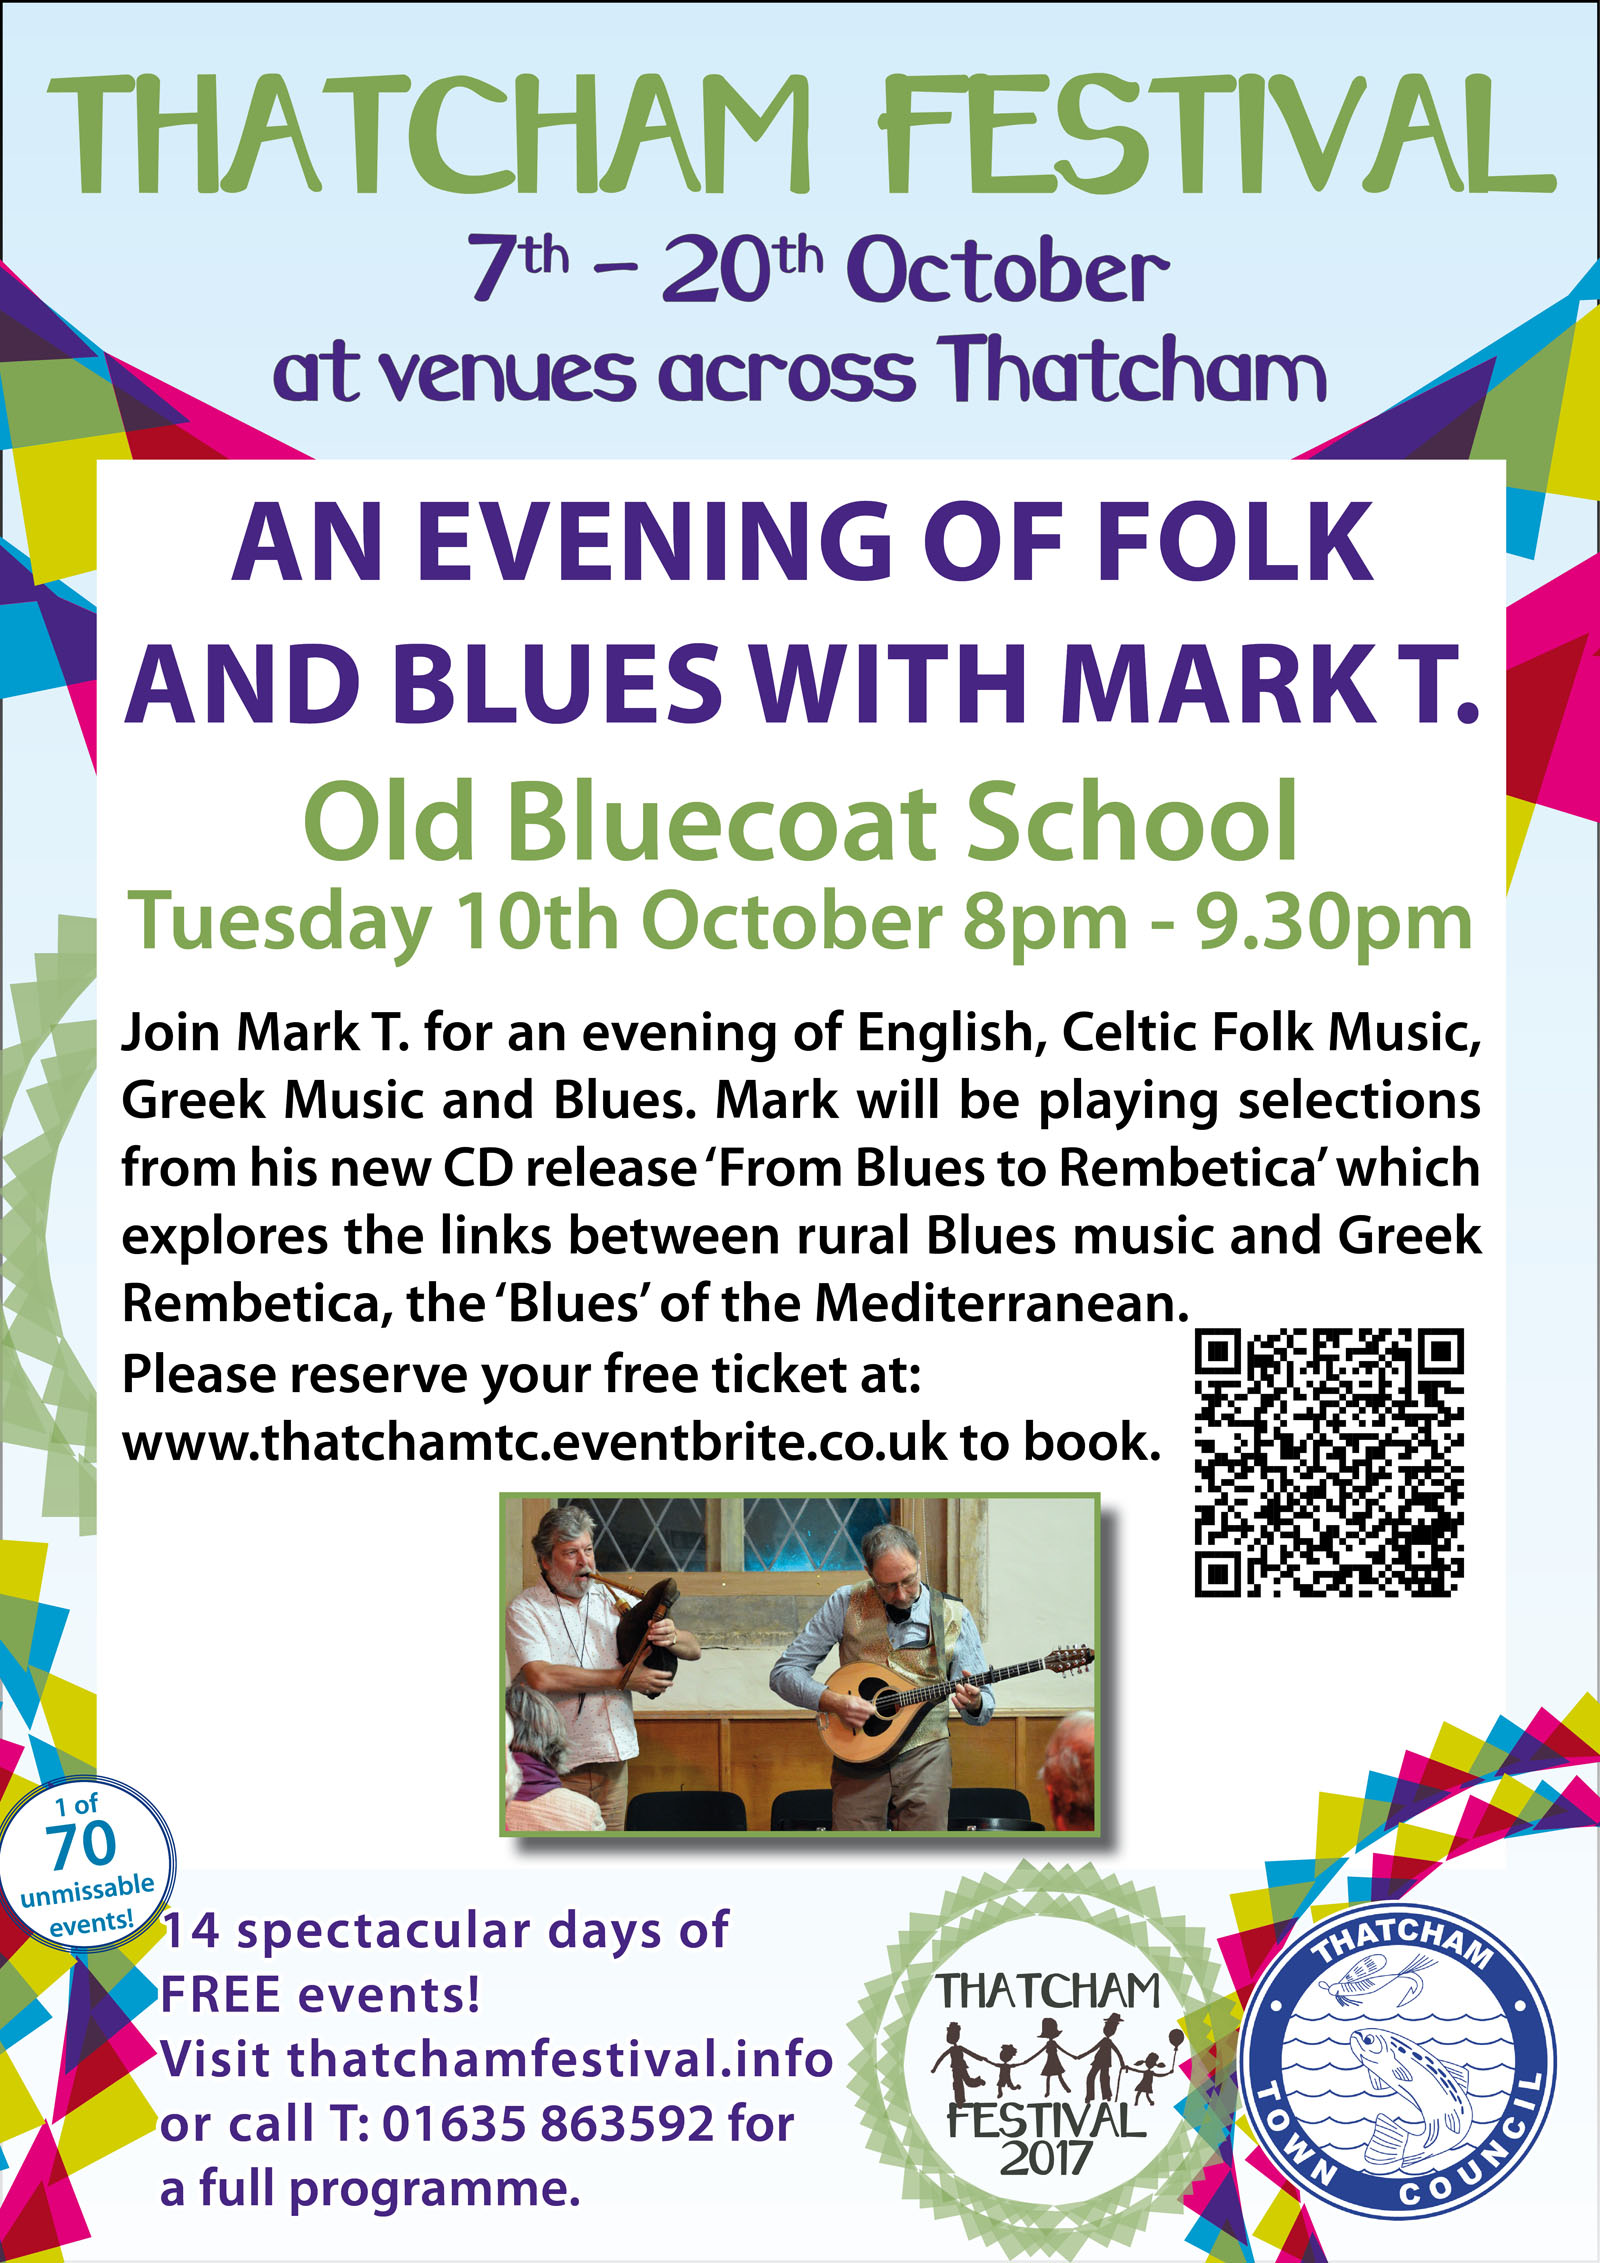 evening-folk-and-blues-mark-t